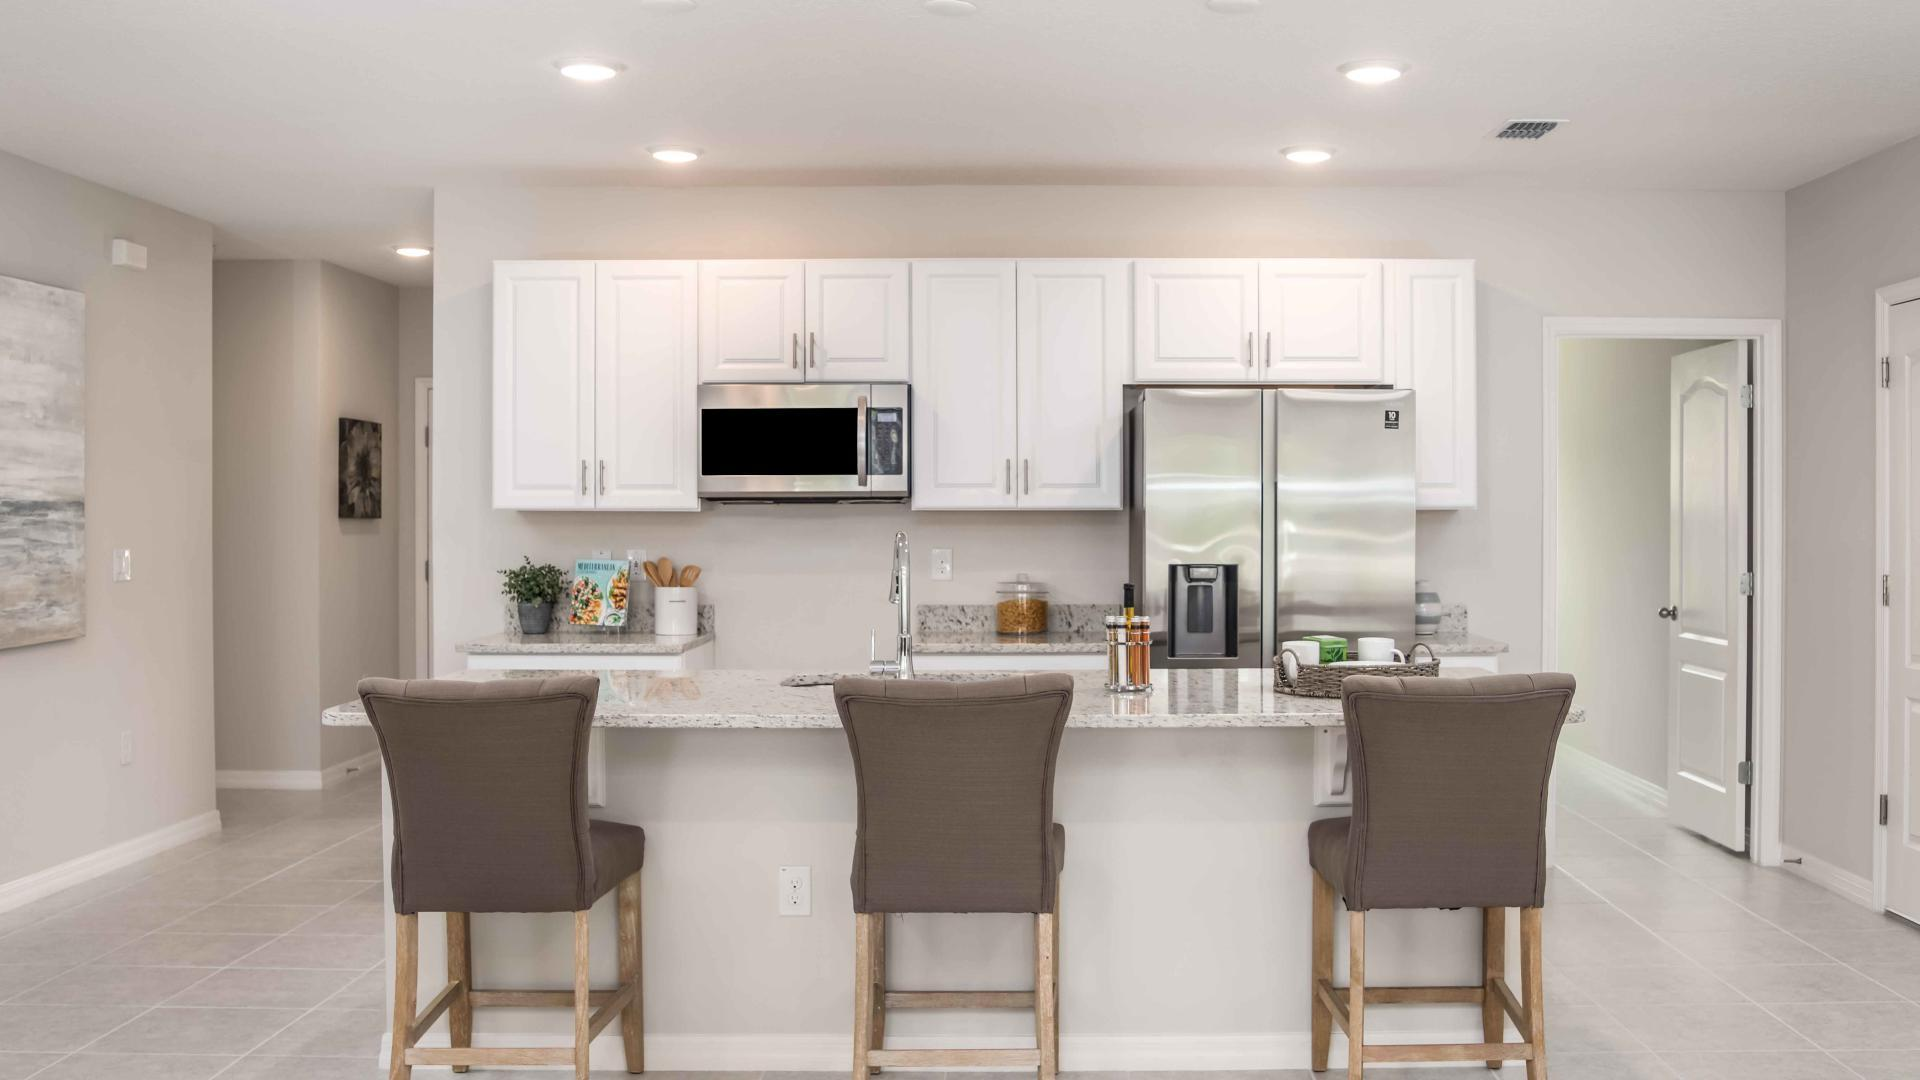 Kitchen featured in the Willow By Maronda Homes in Daytona Beach, FL